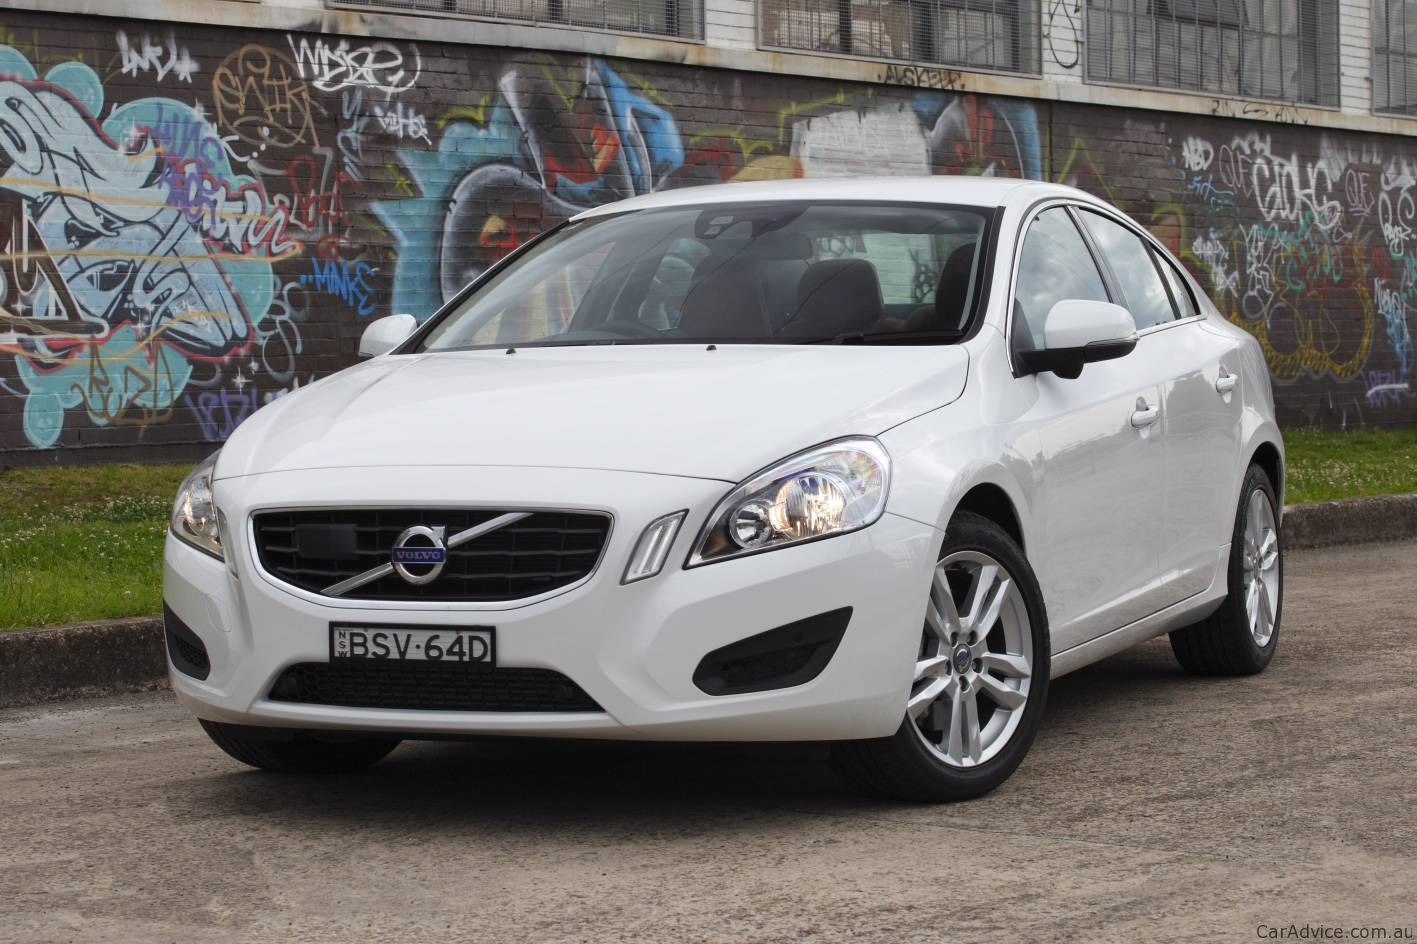 2011 volvo s60 xc60 recalled in australia photos 1 of 3. Black Bedroom Furniture Sets. Home Design Ideas